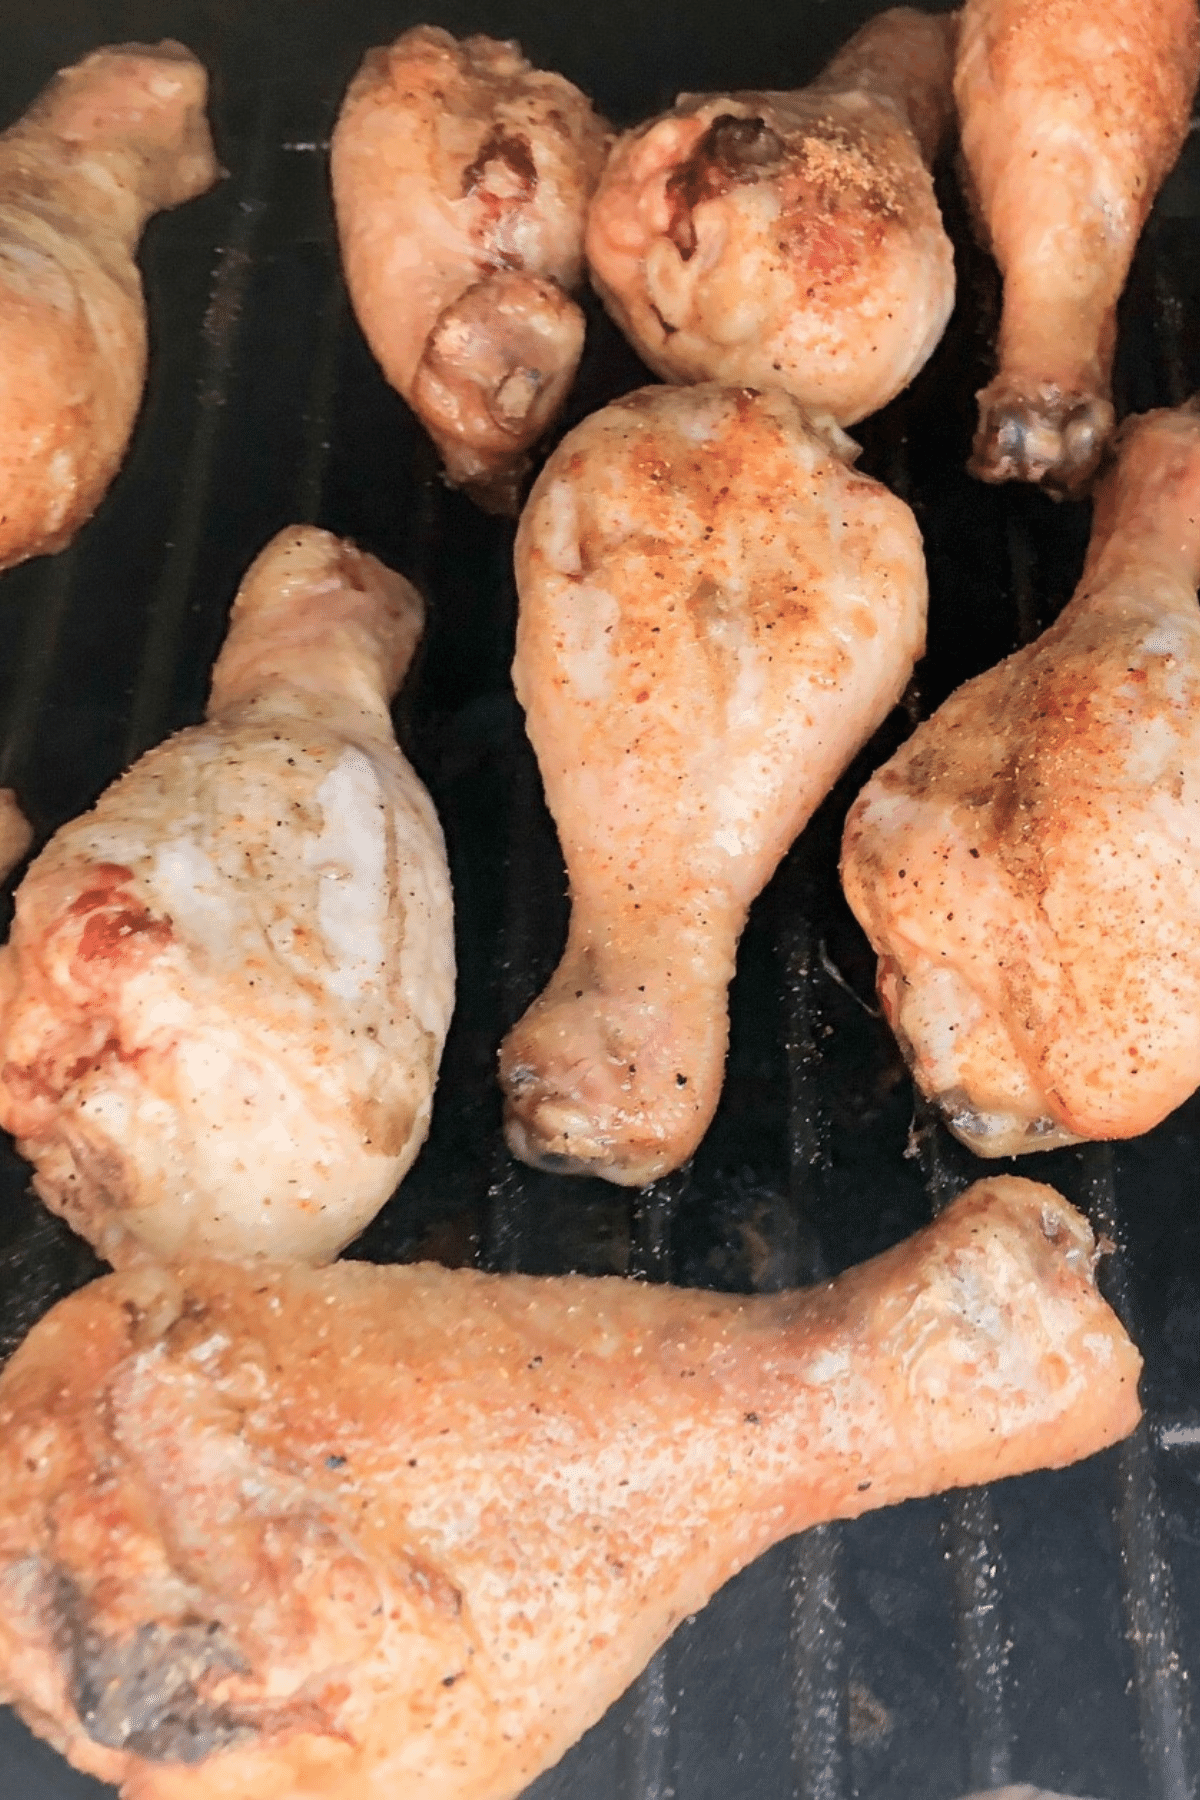 Smoked chicken drumsticks smoking on the Pit Boss Pellet grill